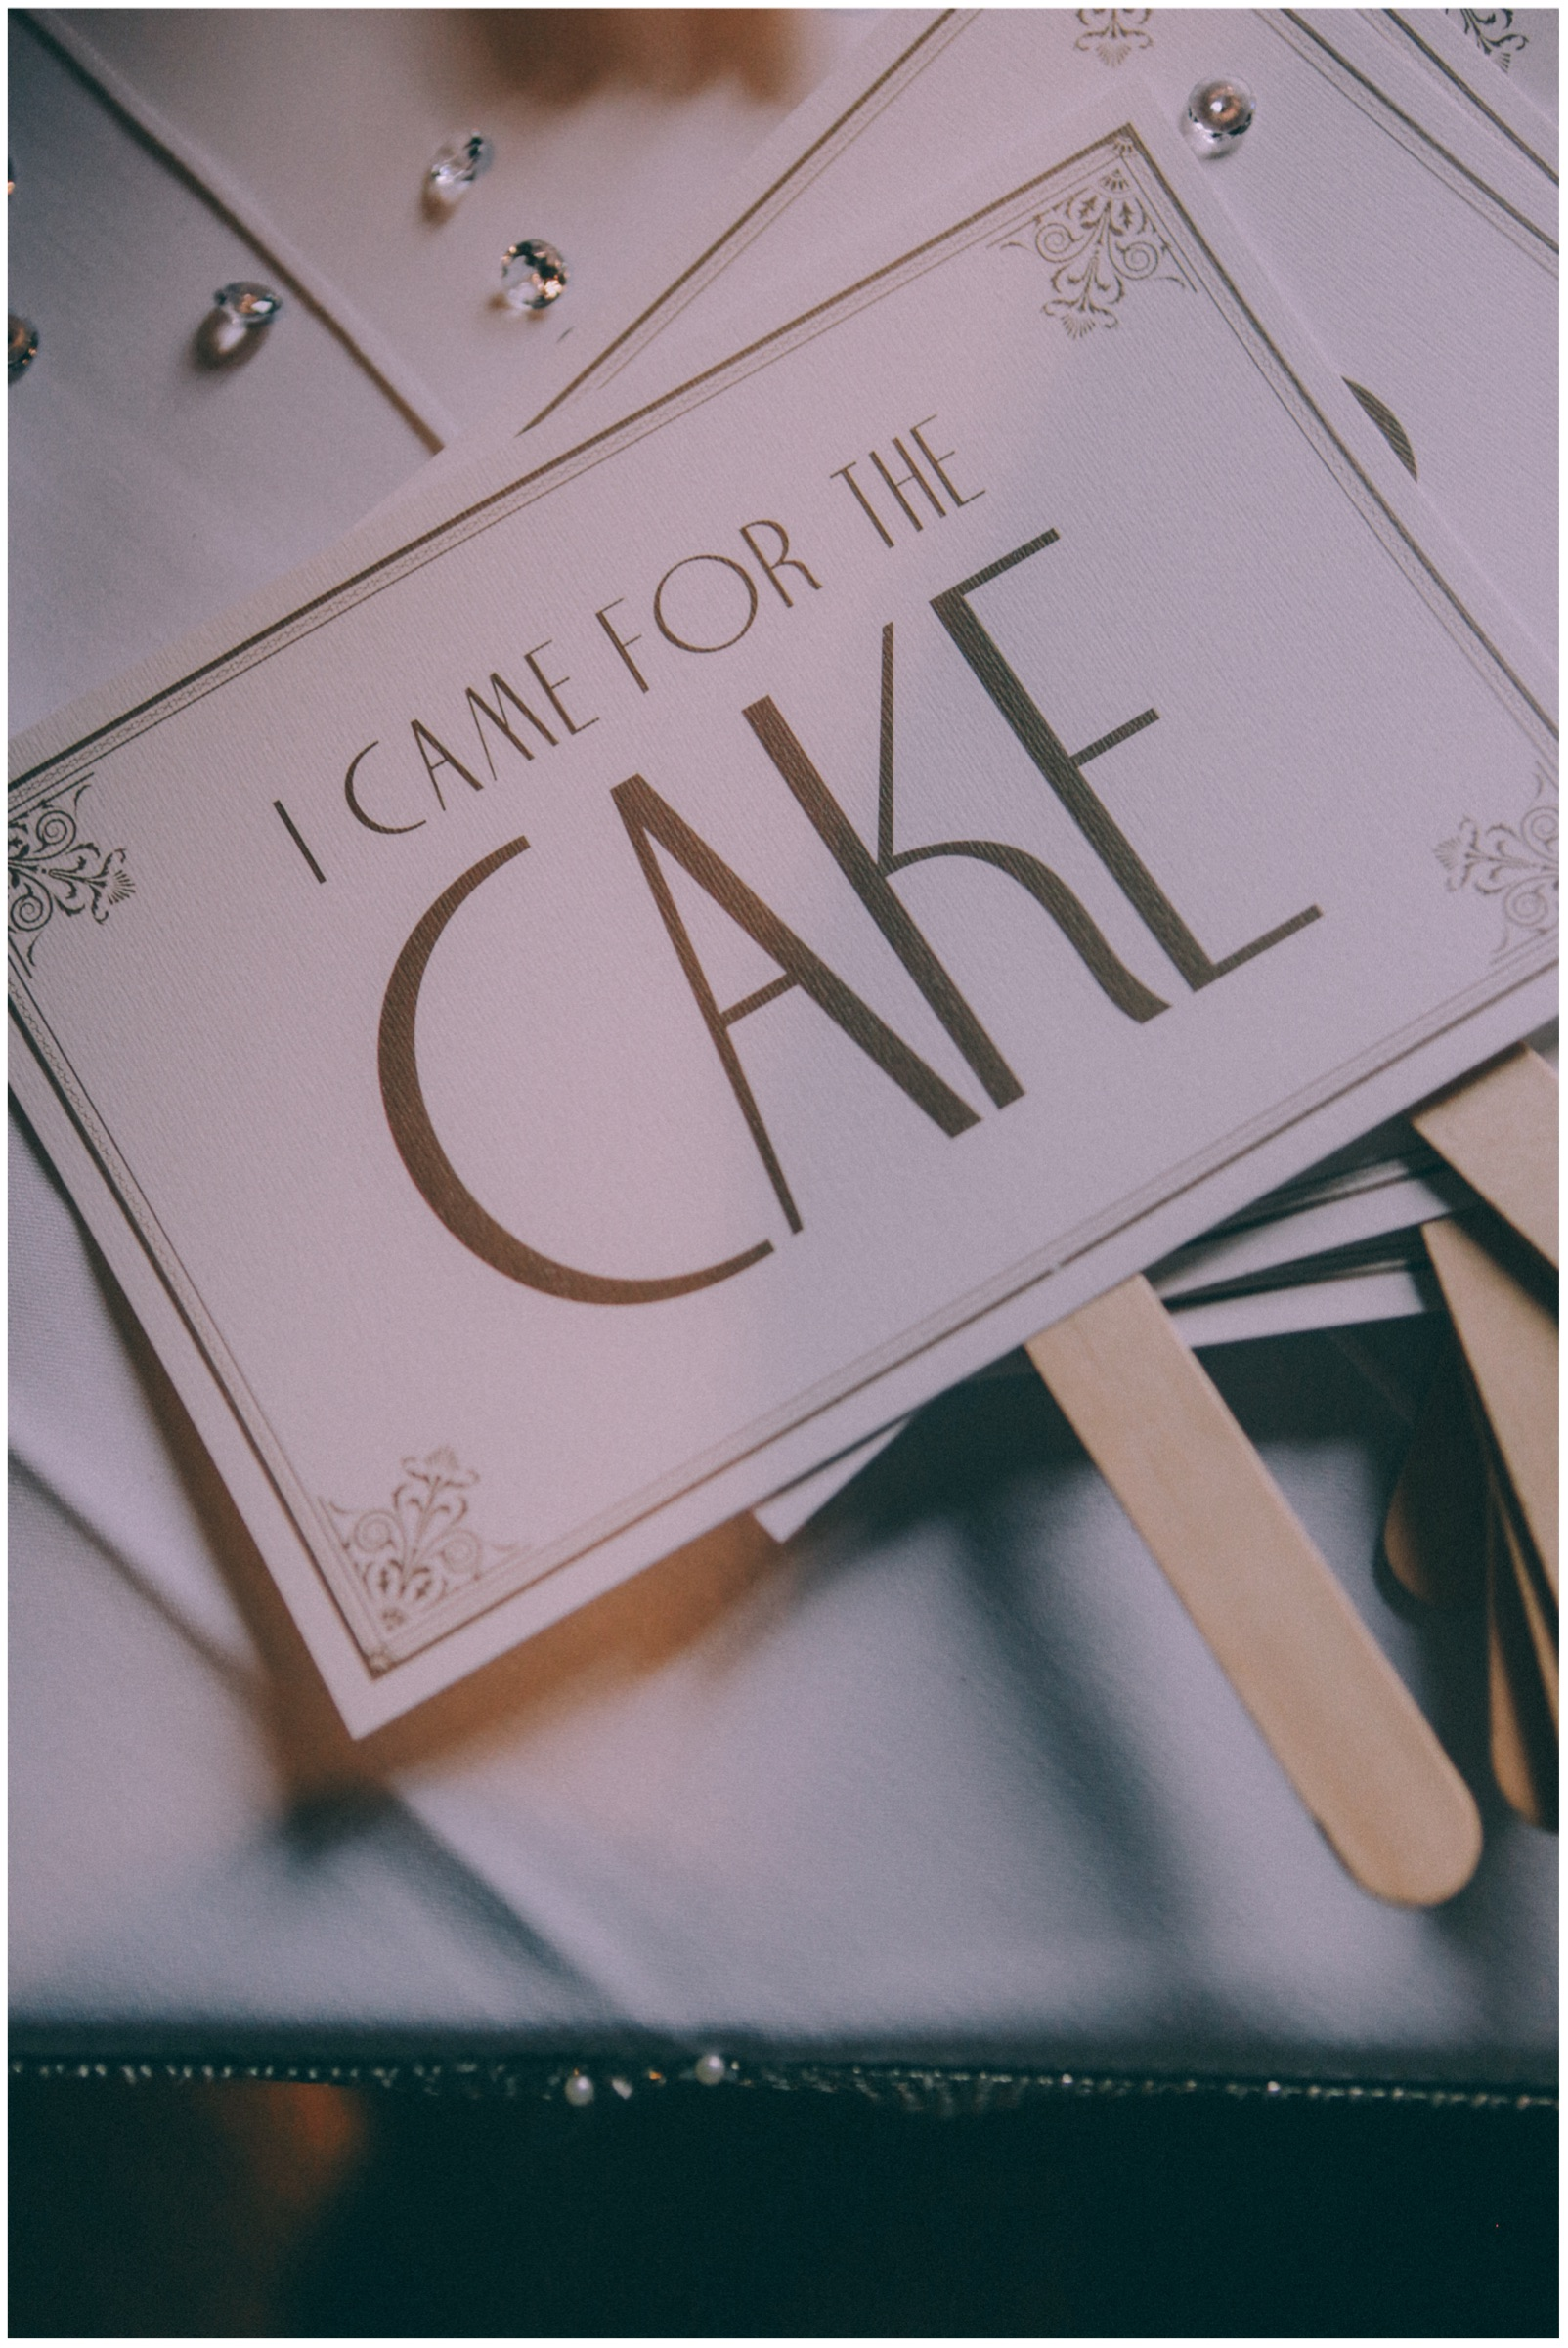 I came for cake sign